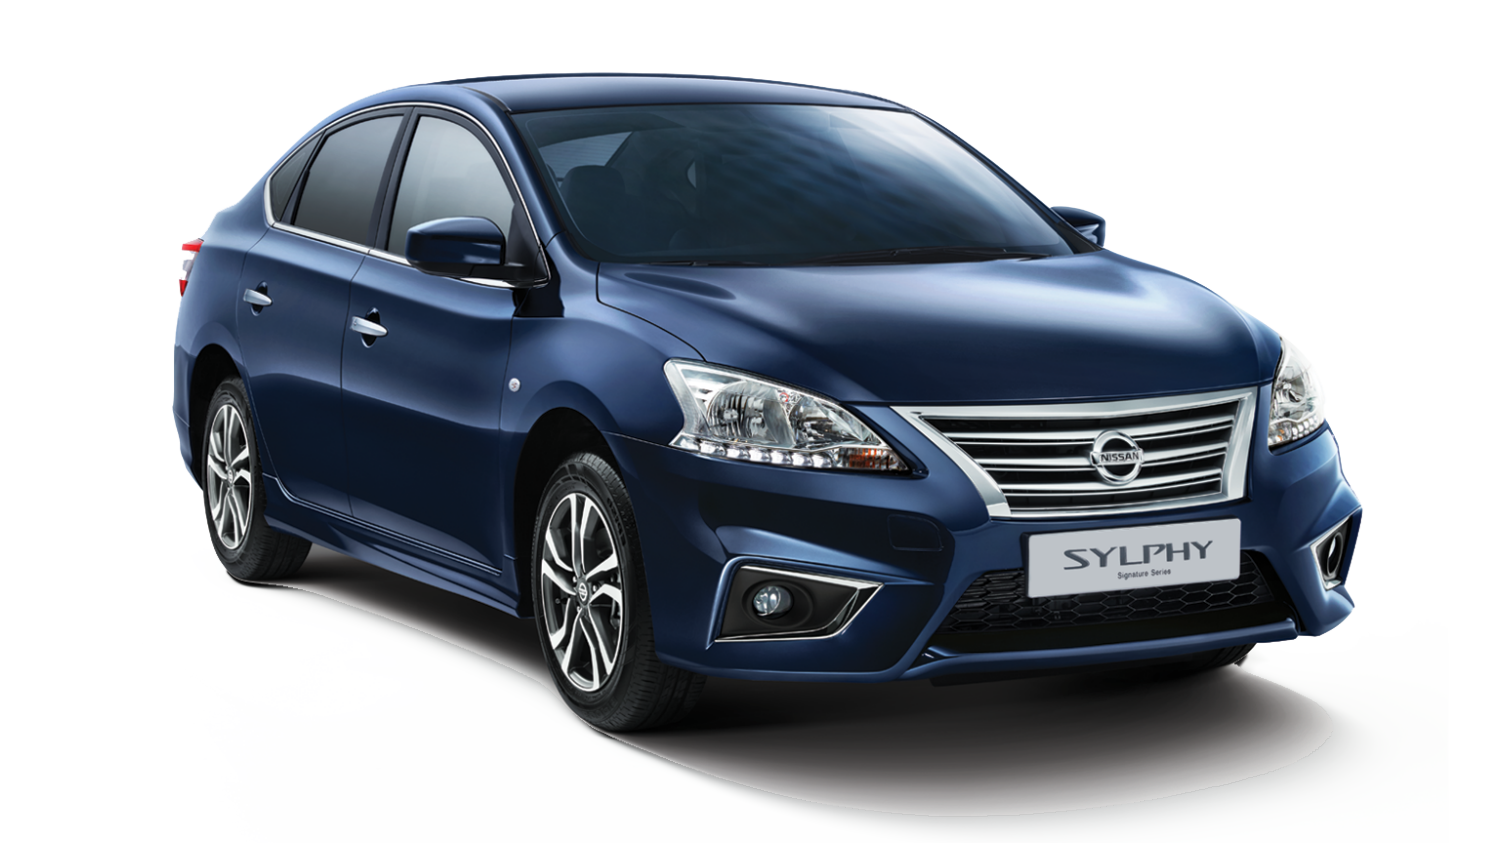 Sylphy Accessories